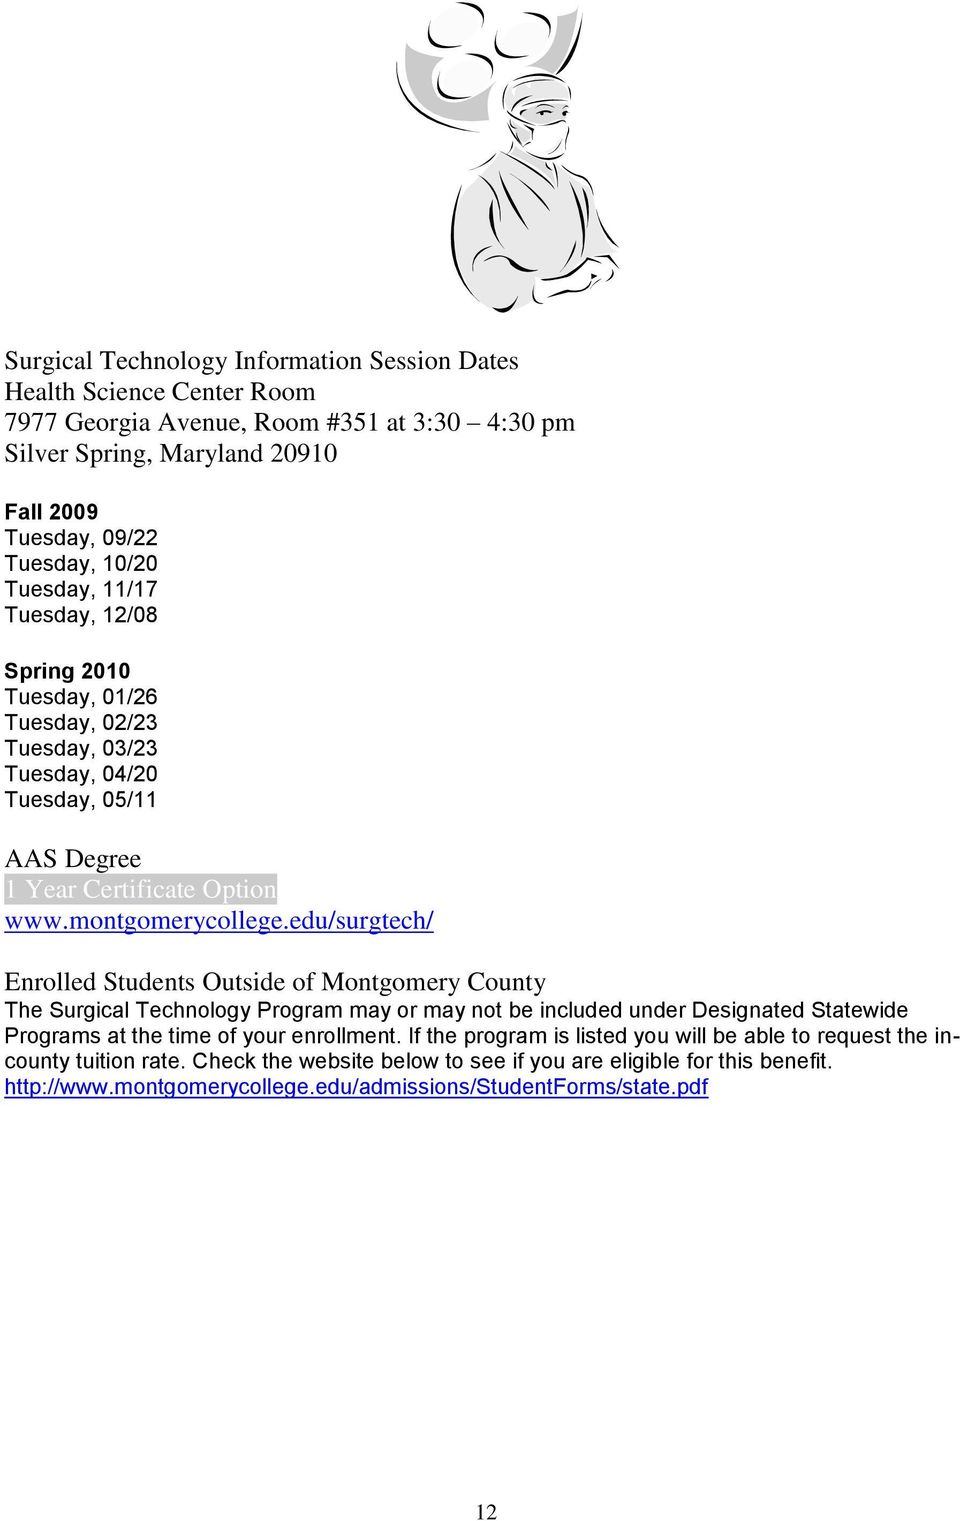 edu/surgtech/ Enrolled Students Outside of Montgomery County The Surgical Technology Program may or may not be included under Designated Statewide Programs at the time of your enrollment.